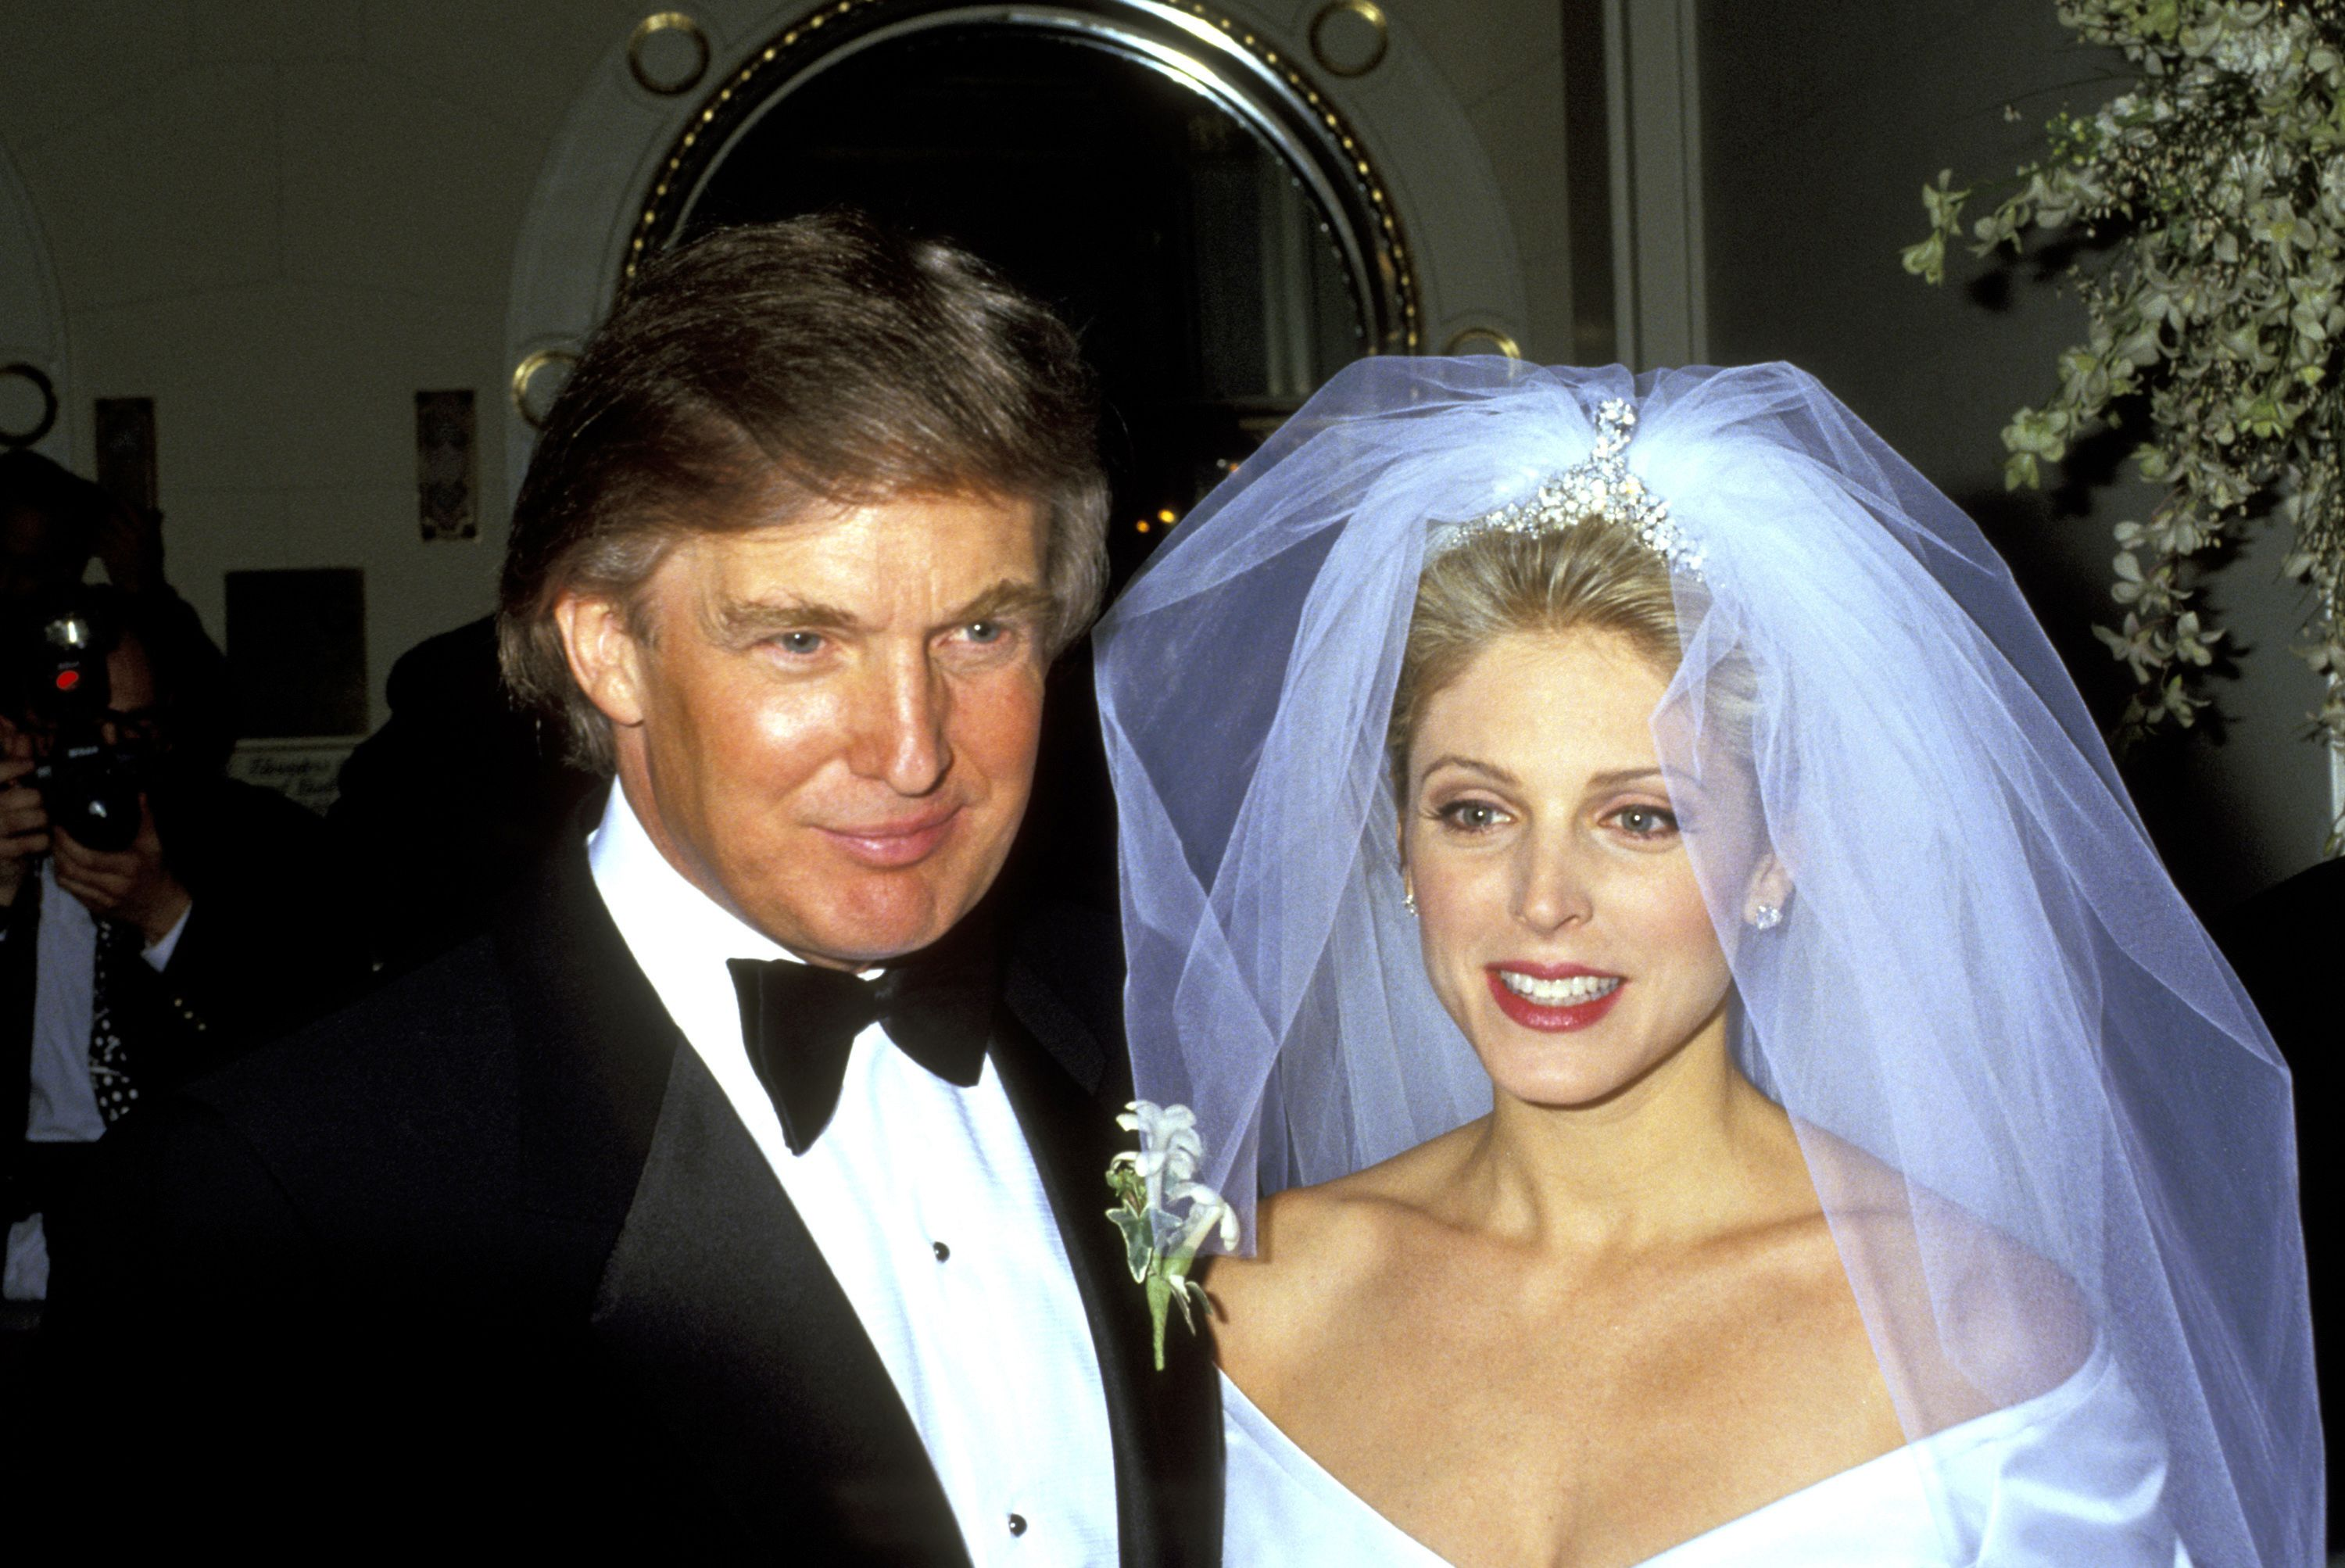 Marla Maples and Donald Trump's wedding in New York City, 20th December 1993 | Source: Getty Images